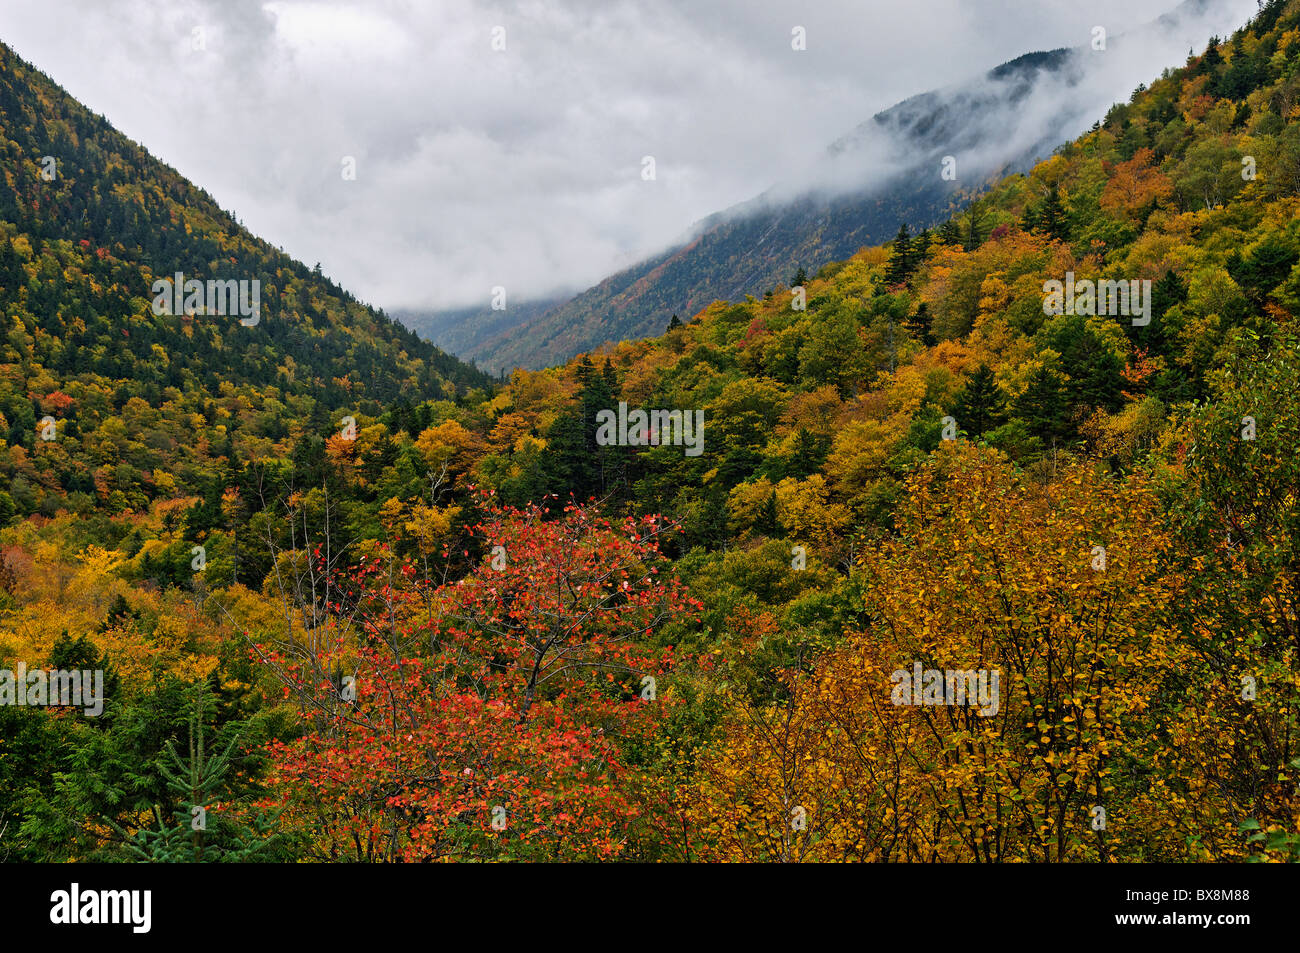 Autumn Color in Crawford Notch in the White Mountains National Forest in Carroll County, New Hampshire Stock Photo